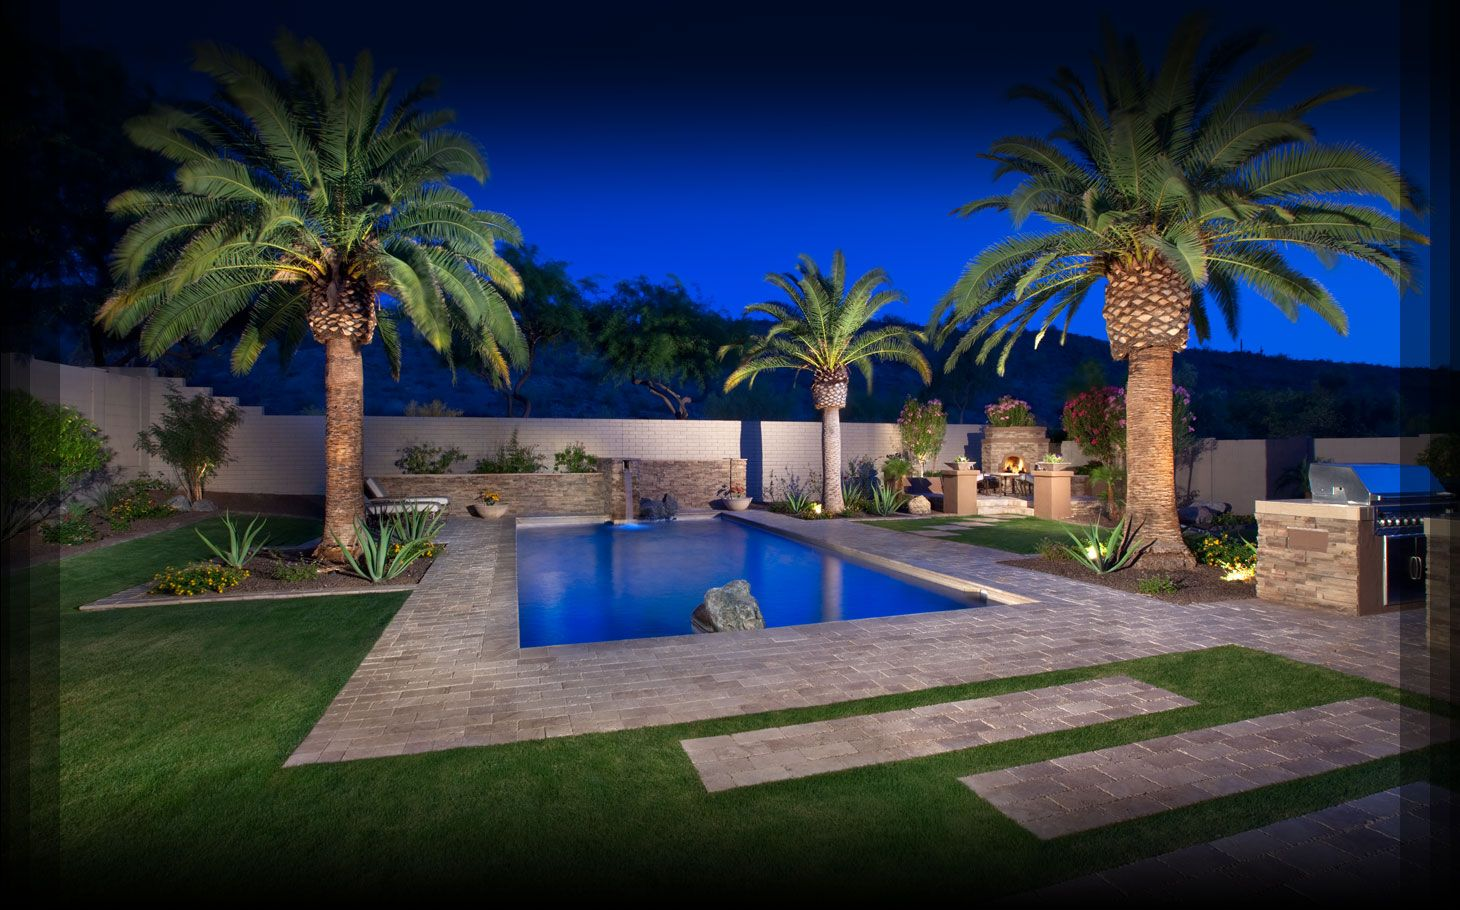 Desert pool landscaping arizona phoenix pool for Pool landscaping ideas